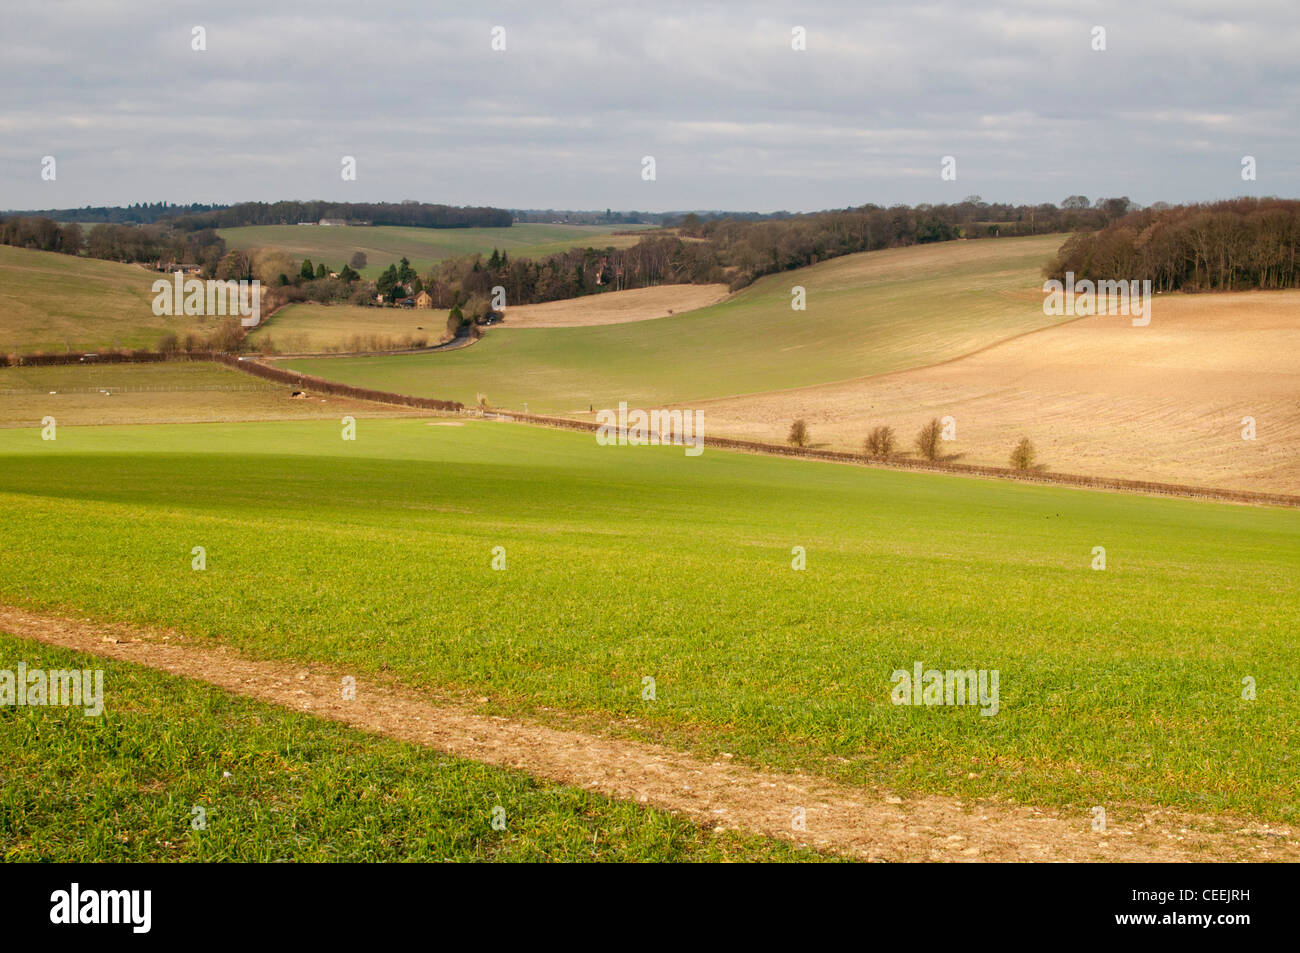 Chiltern countryside near Hemel Hempstead, Hertfordshire, UK. - Stock Image